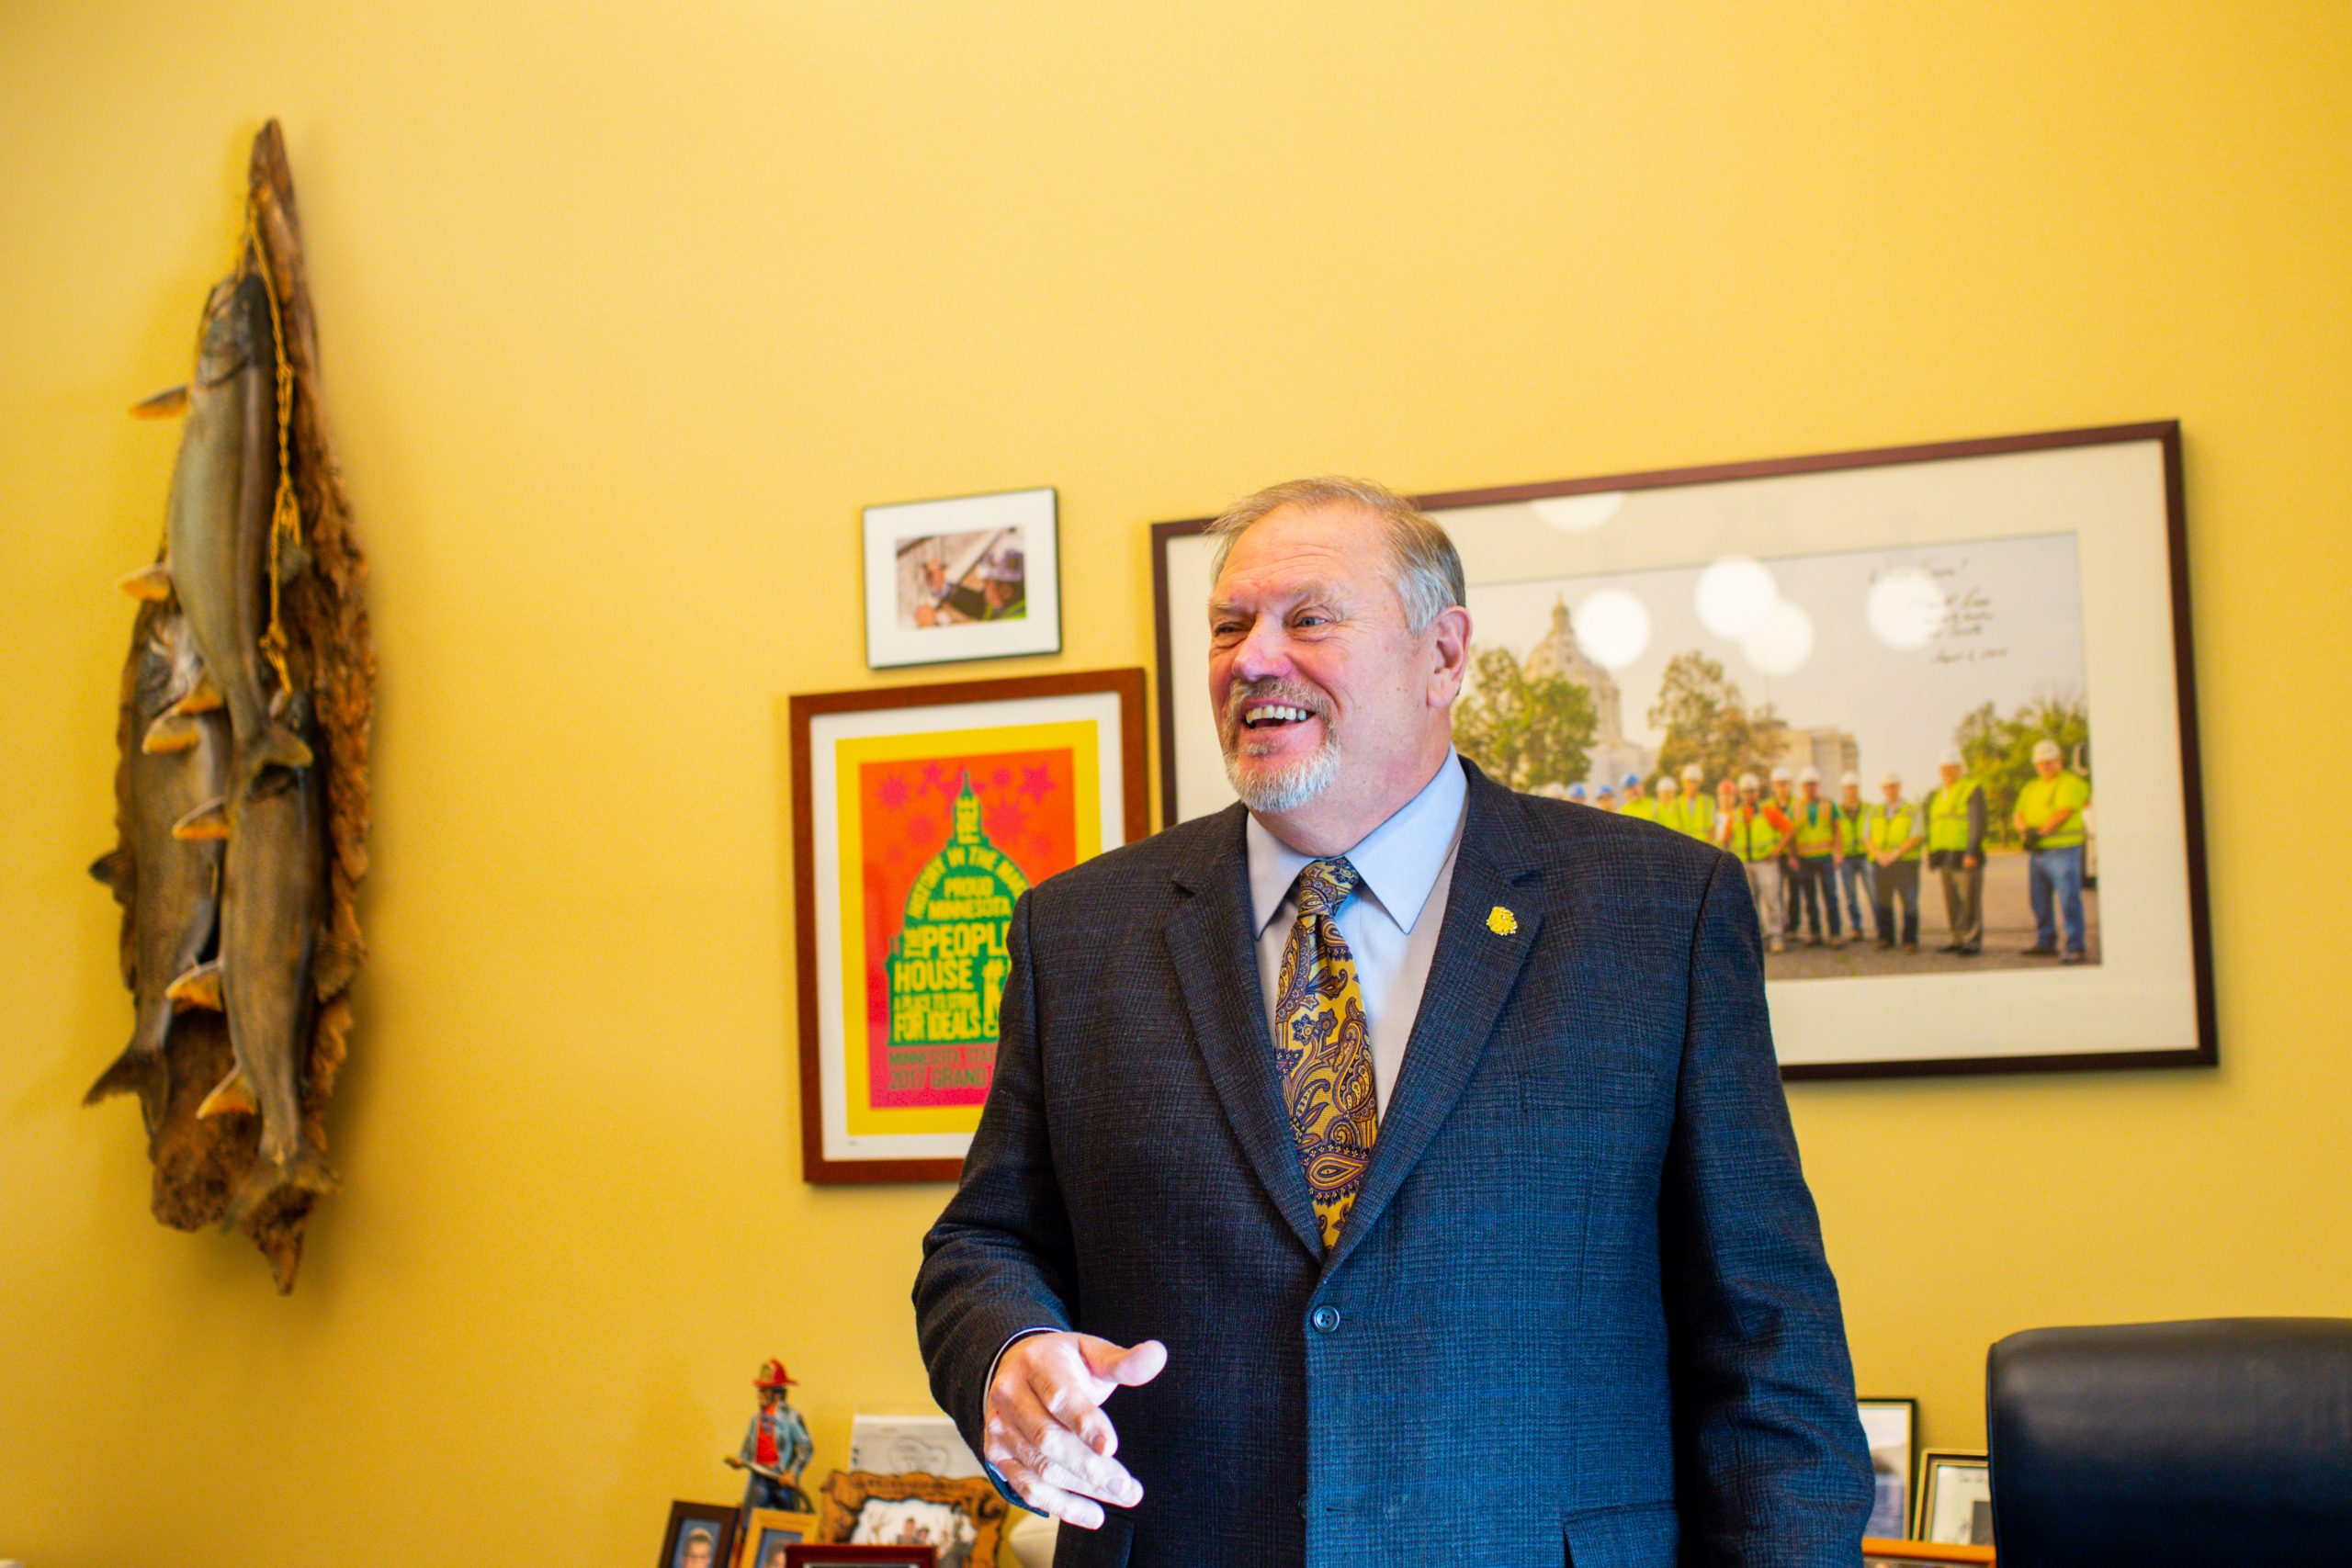 After decamping from Senate DFL, Bakk finds himself back in the middle of state politics